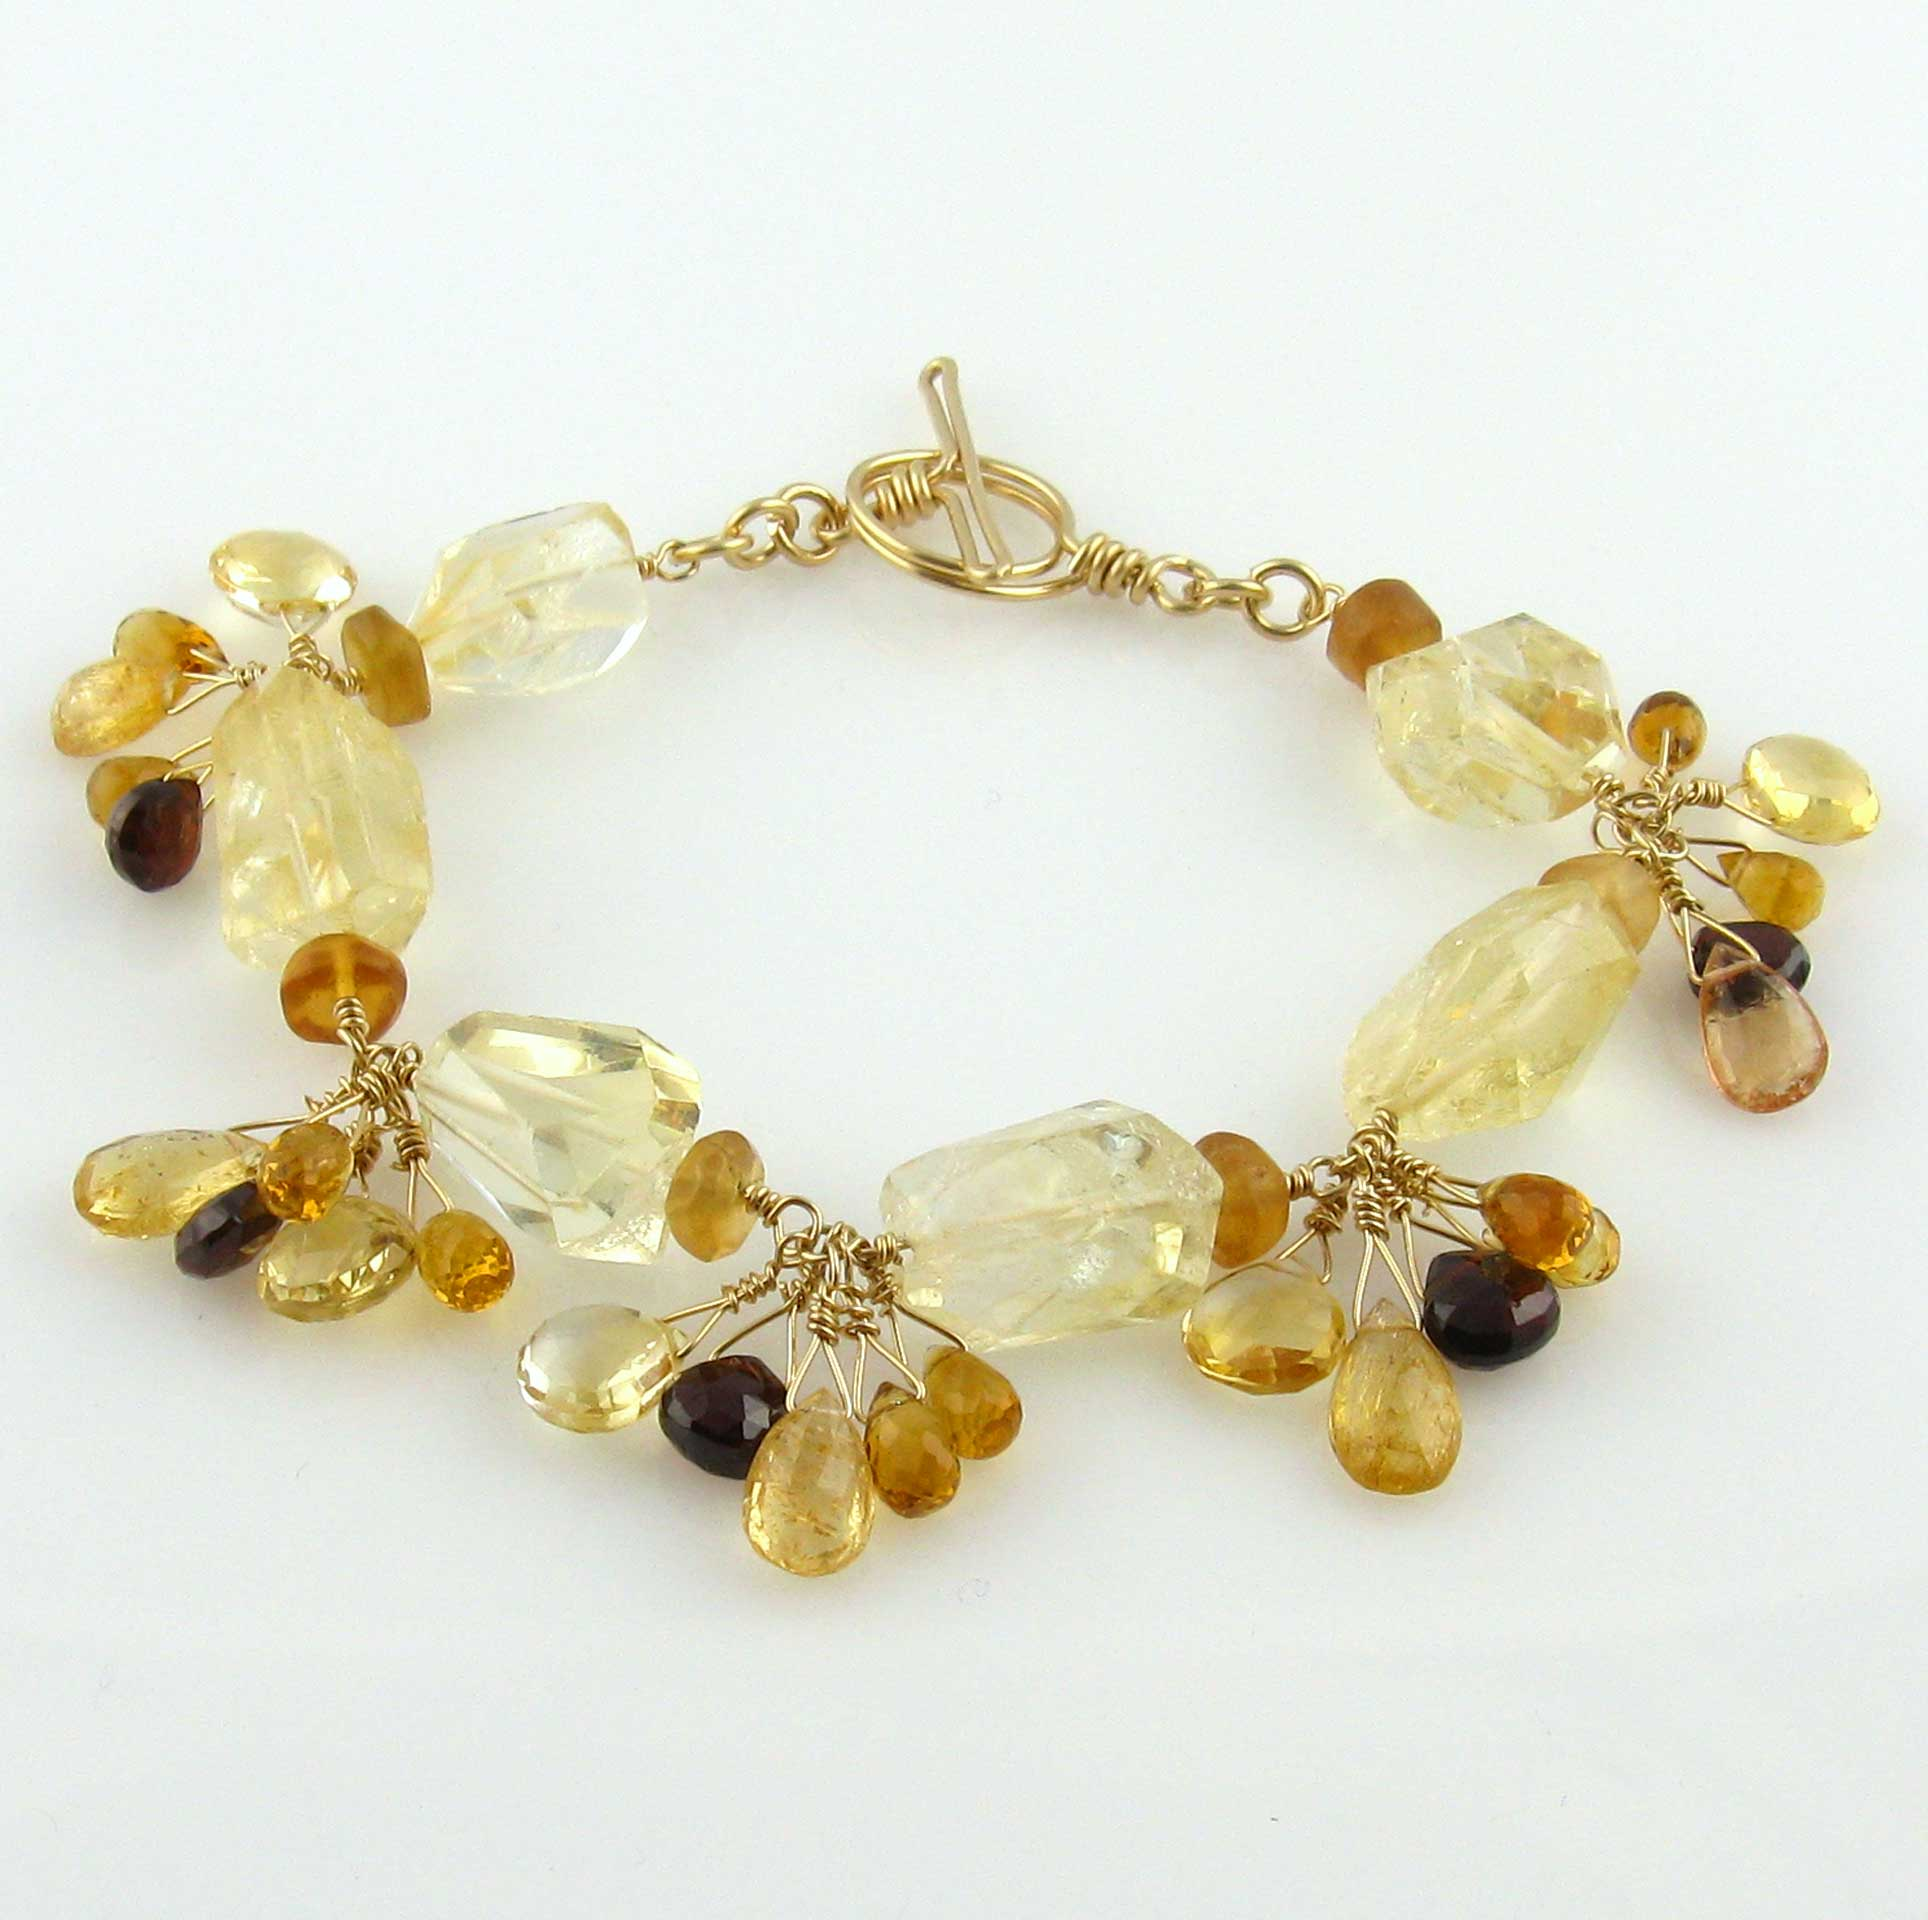 chains pixiu chinese meaning yellow pi charm crystal citrine quartz natural jewelry xiu bracelet bangles beaded silver product bracelets